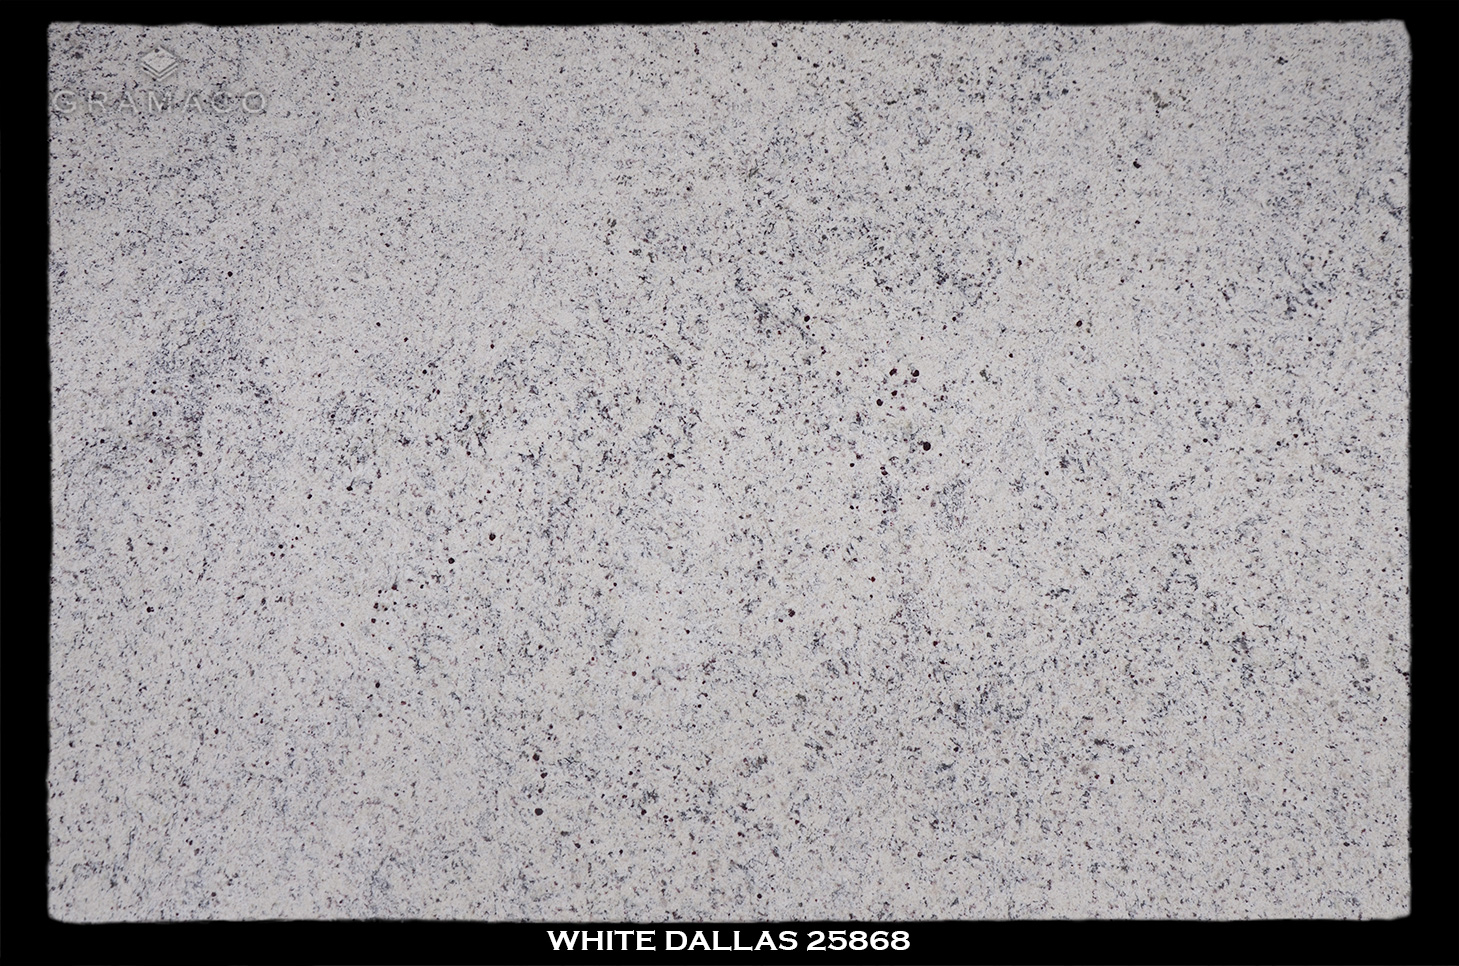 WHITE-DALLAS-25868